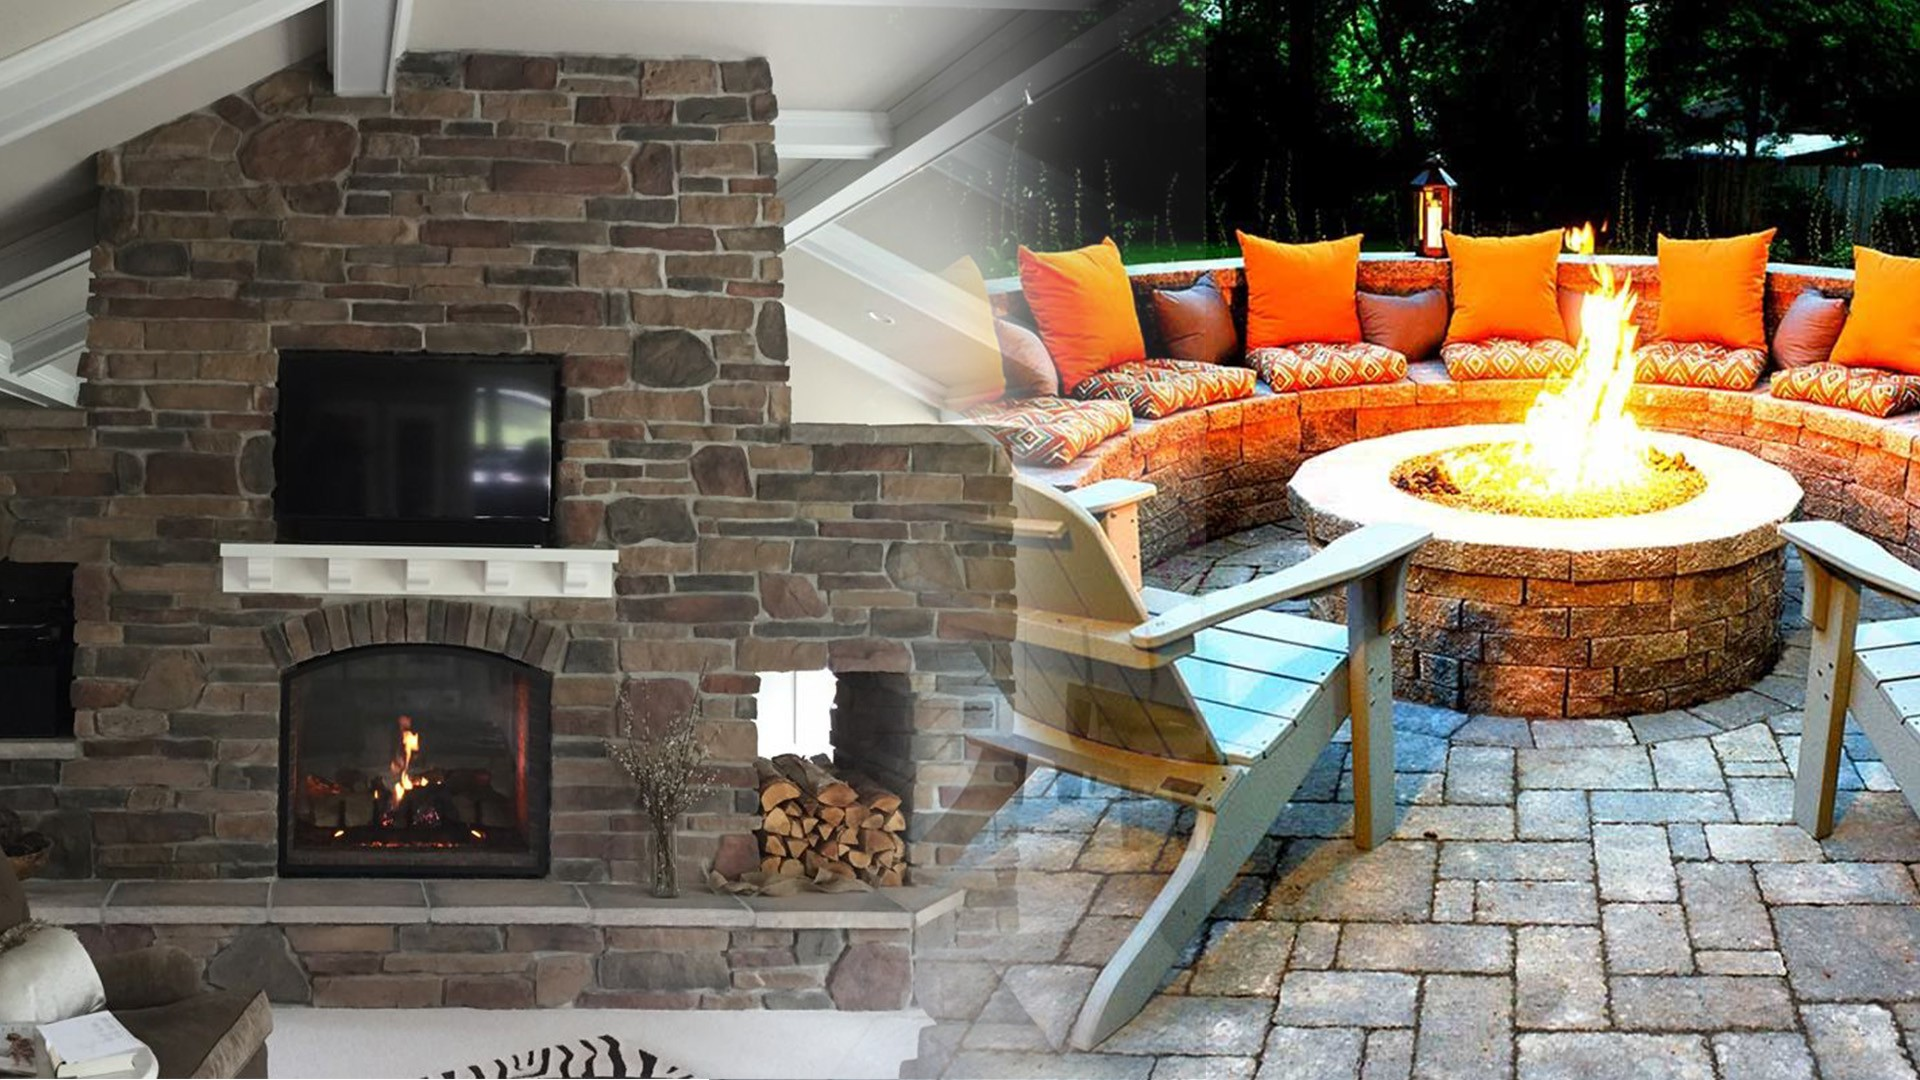 Outdoor Fireplaces & Fire Pits-El Paso TX Landscape Designs & Outdoor Living Areas-We offer Landscape Design, Outdoor Patios & Pergolas, Outdoor Living Spaces, Stonescapes, Residential & Commercial Landscaping, Irrigation Installation & Repairs, Drainage Systems, Landscape Lighting, Outdoor Living Spaces, Tree Service, Lawn Service, and more.